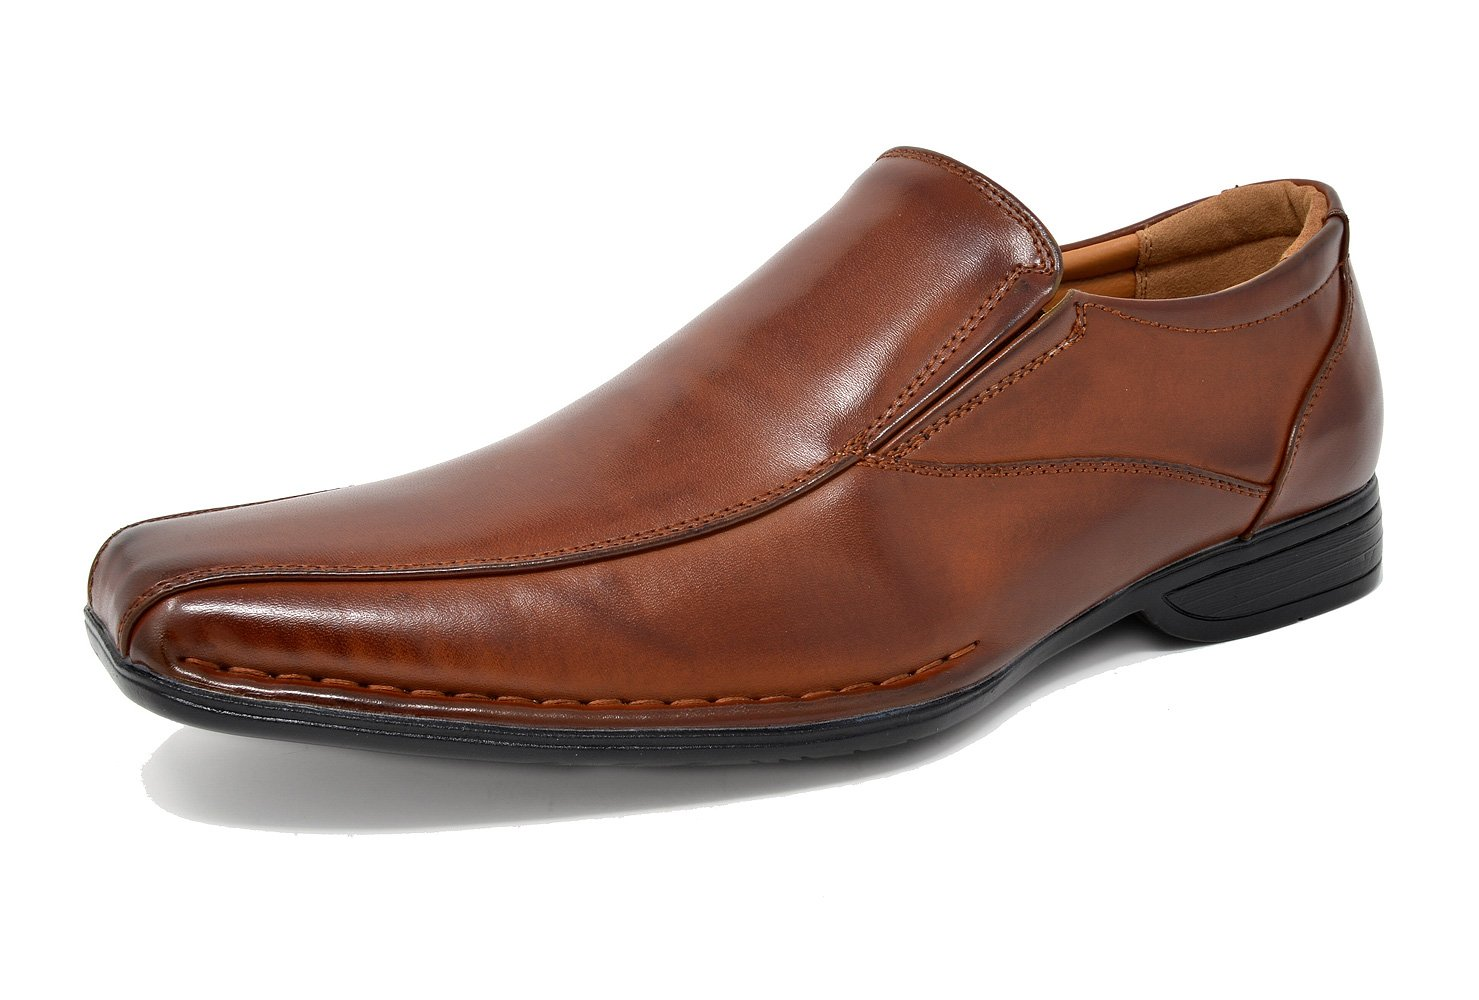 Bruno Marc Men's Giorgio-1 Brown Leather Lined Dress Loafers Shoes - 11 M US by BRUNO MARC NEW YORK (Image #1)